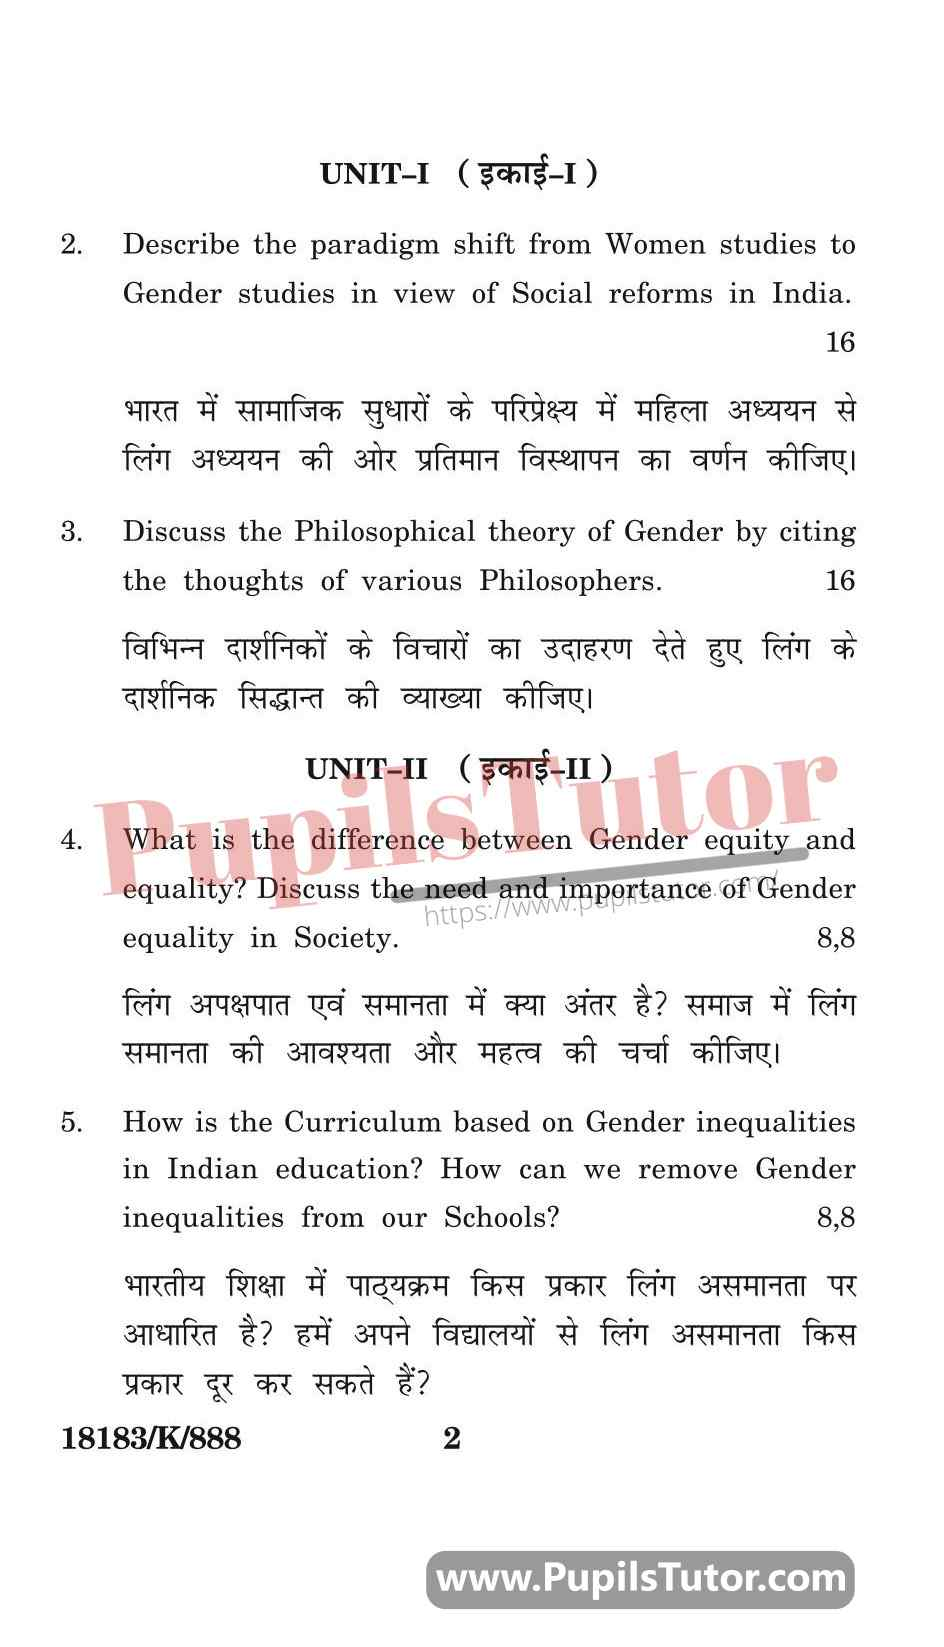 KUK (Kurukshetra University, Haryana) Gender, School And Society Question Paper 2020 For B.Ed 1st And 2nd Year And All The 4 Semesters In English And Hindi Medium Free Download PDF - Page 2 - www.pupilstutor.com